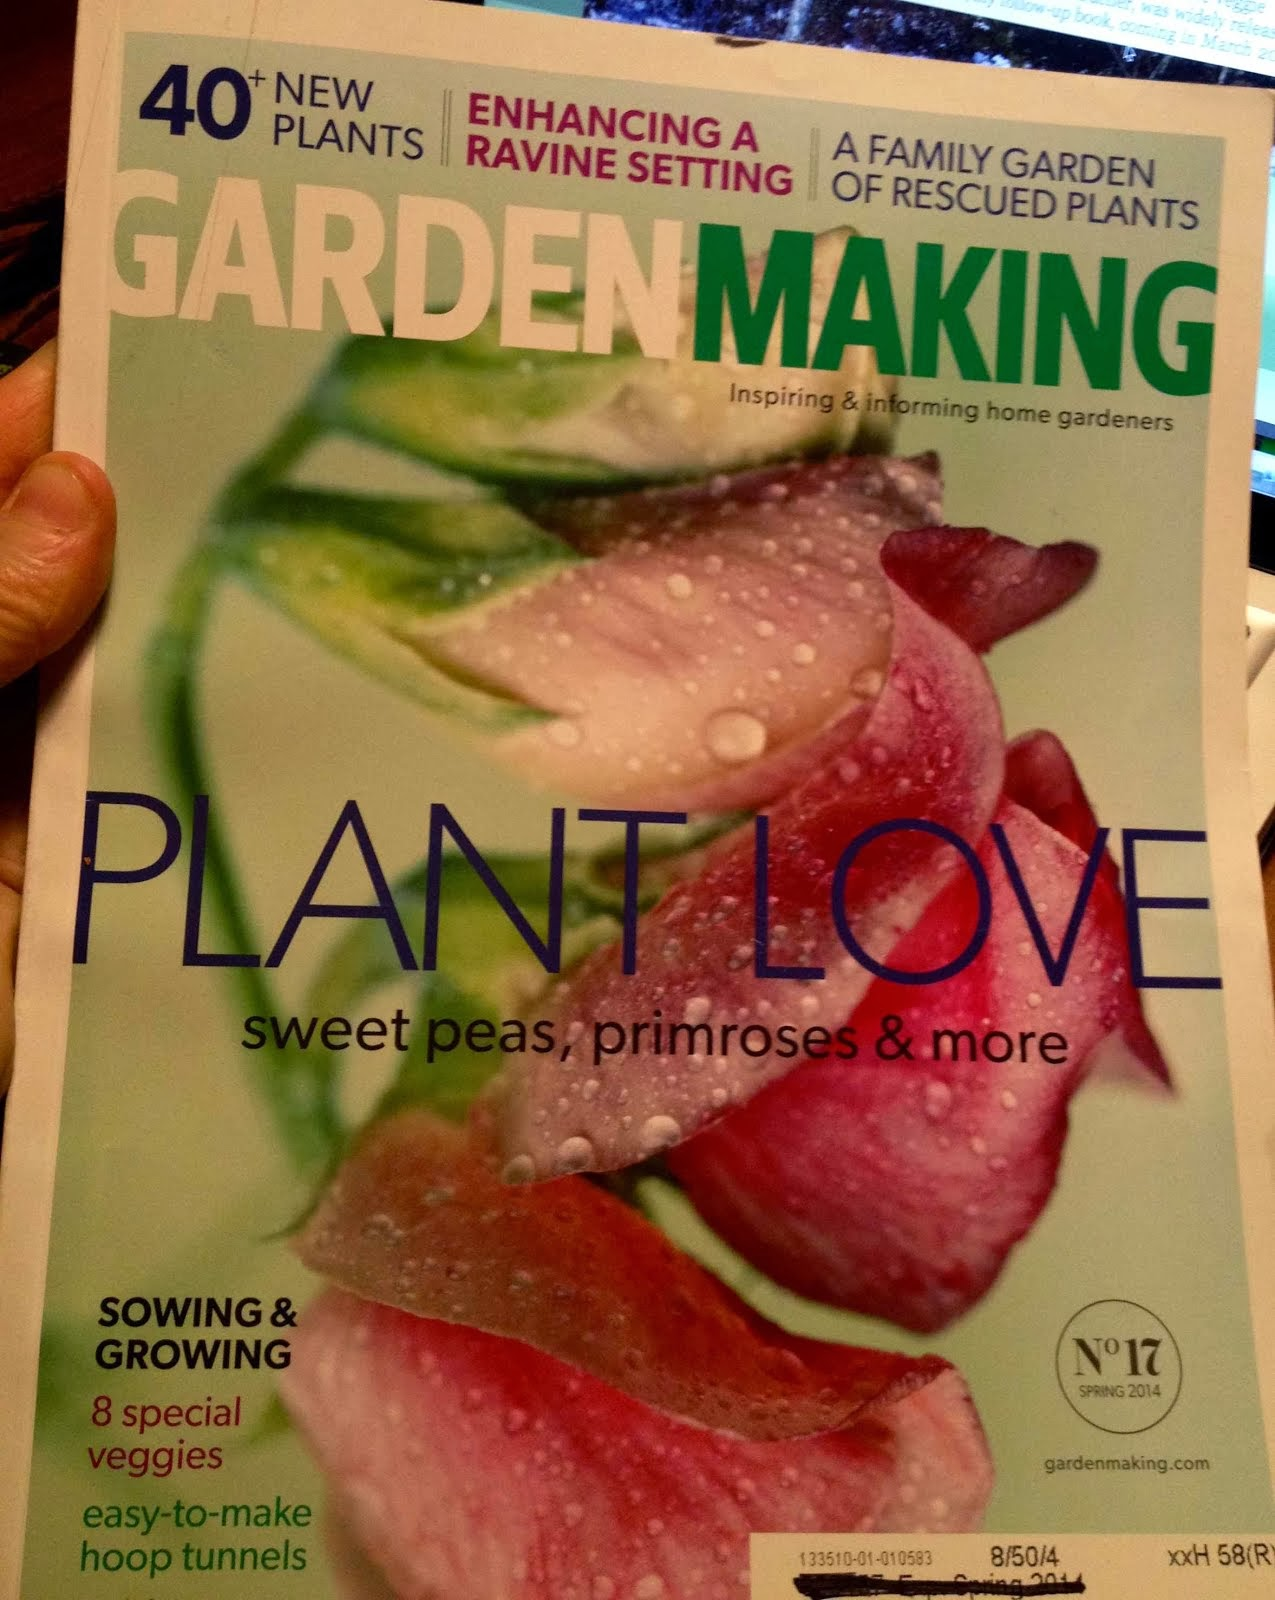 Available now - the spring issue of Garden Making!